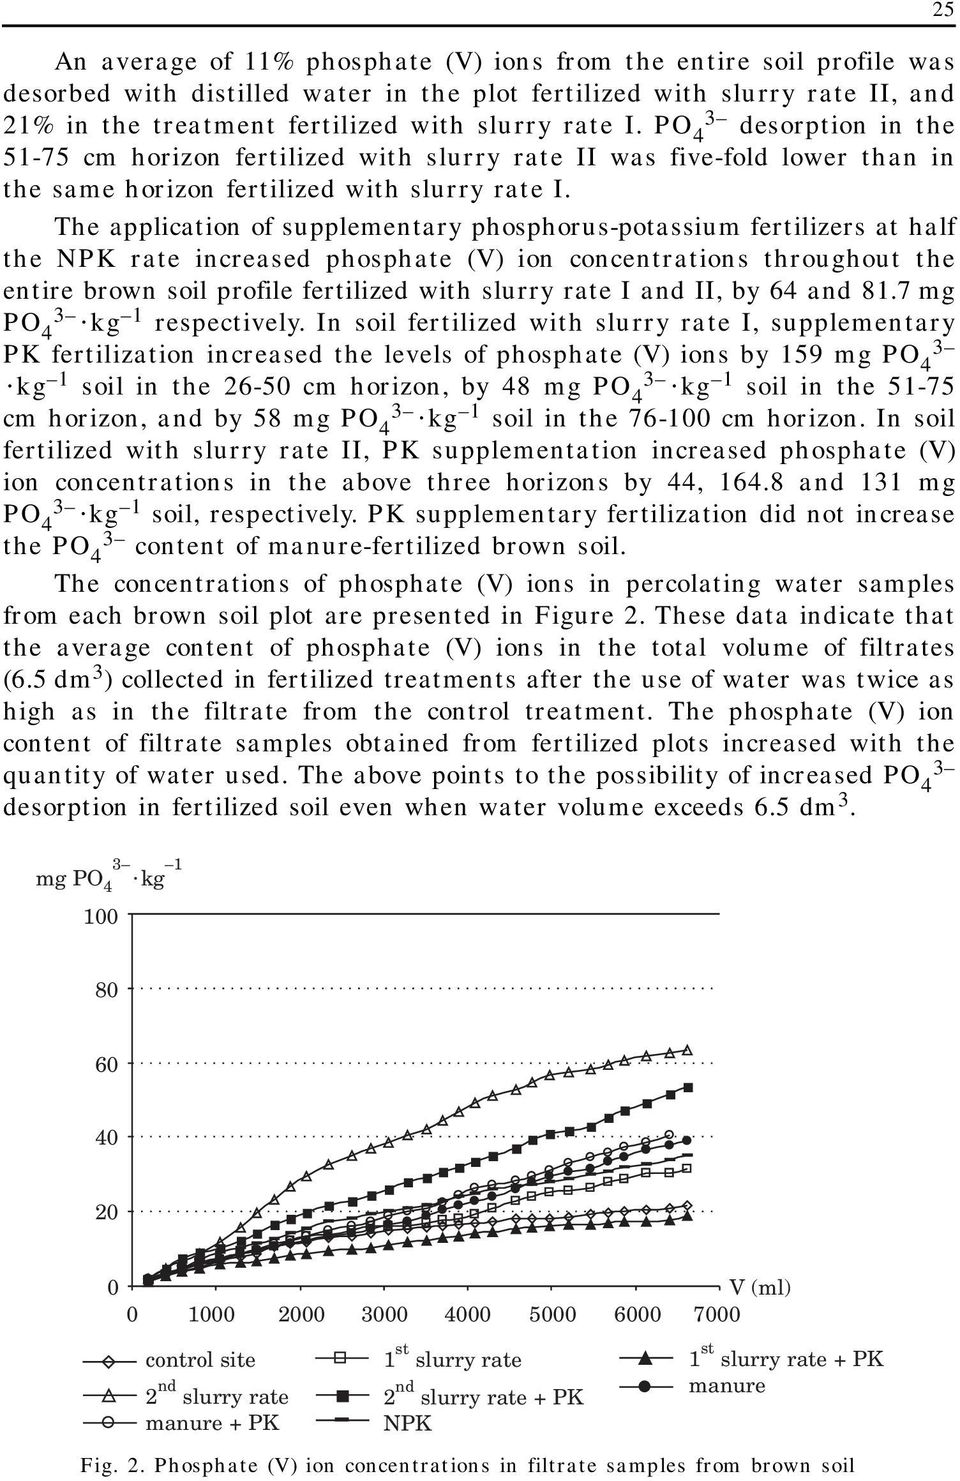 The application of supplementary phosphorus-potassium fertilizers at half the NPK rate increased phosphate (V) ion concentrations throughout the entire brown soil profile fertilized with slurry rate